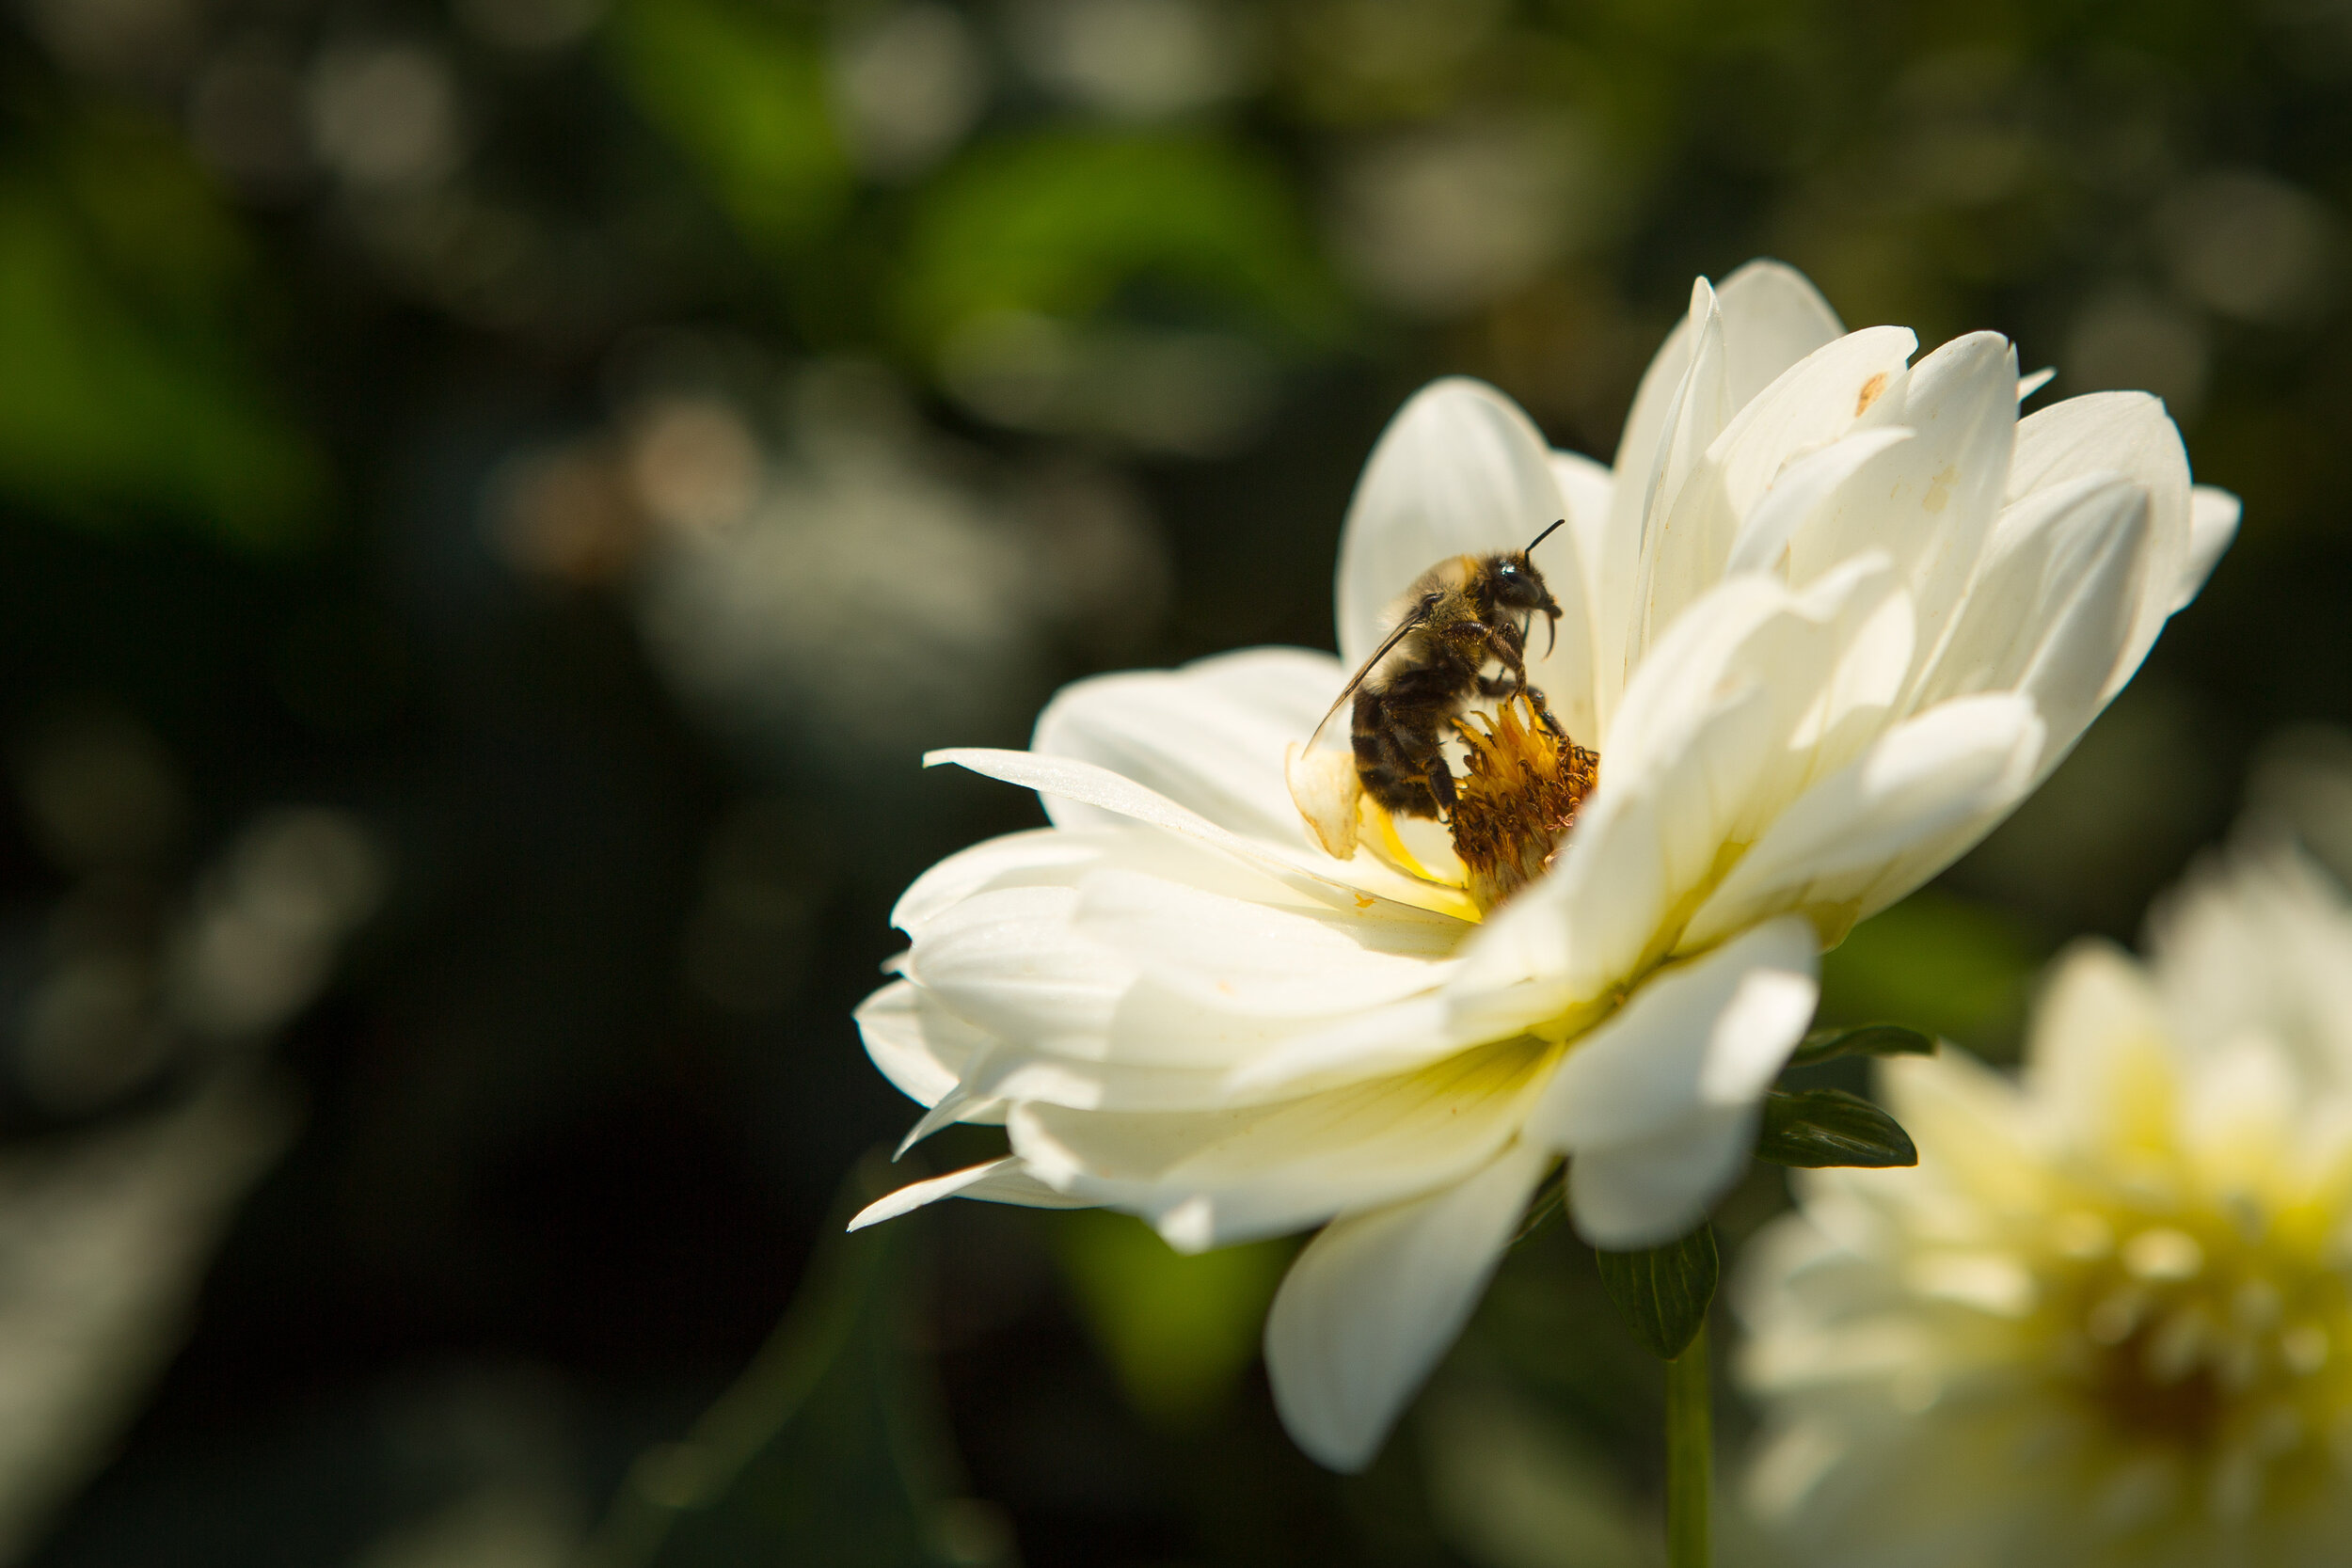 """""""Pollination is needed for plants to reproduce, and so many plants depend on bees or other insects as pollinators. When a bee collects nectar and pollen from the flower of a plant, some pollen from the stamens—the male reproductive organ of the flower—sticks to the hairs of her body.""""  -https://bees.techno-science.ca/"""